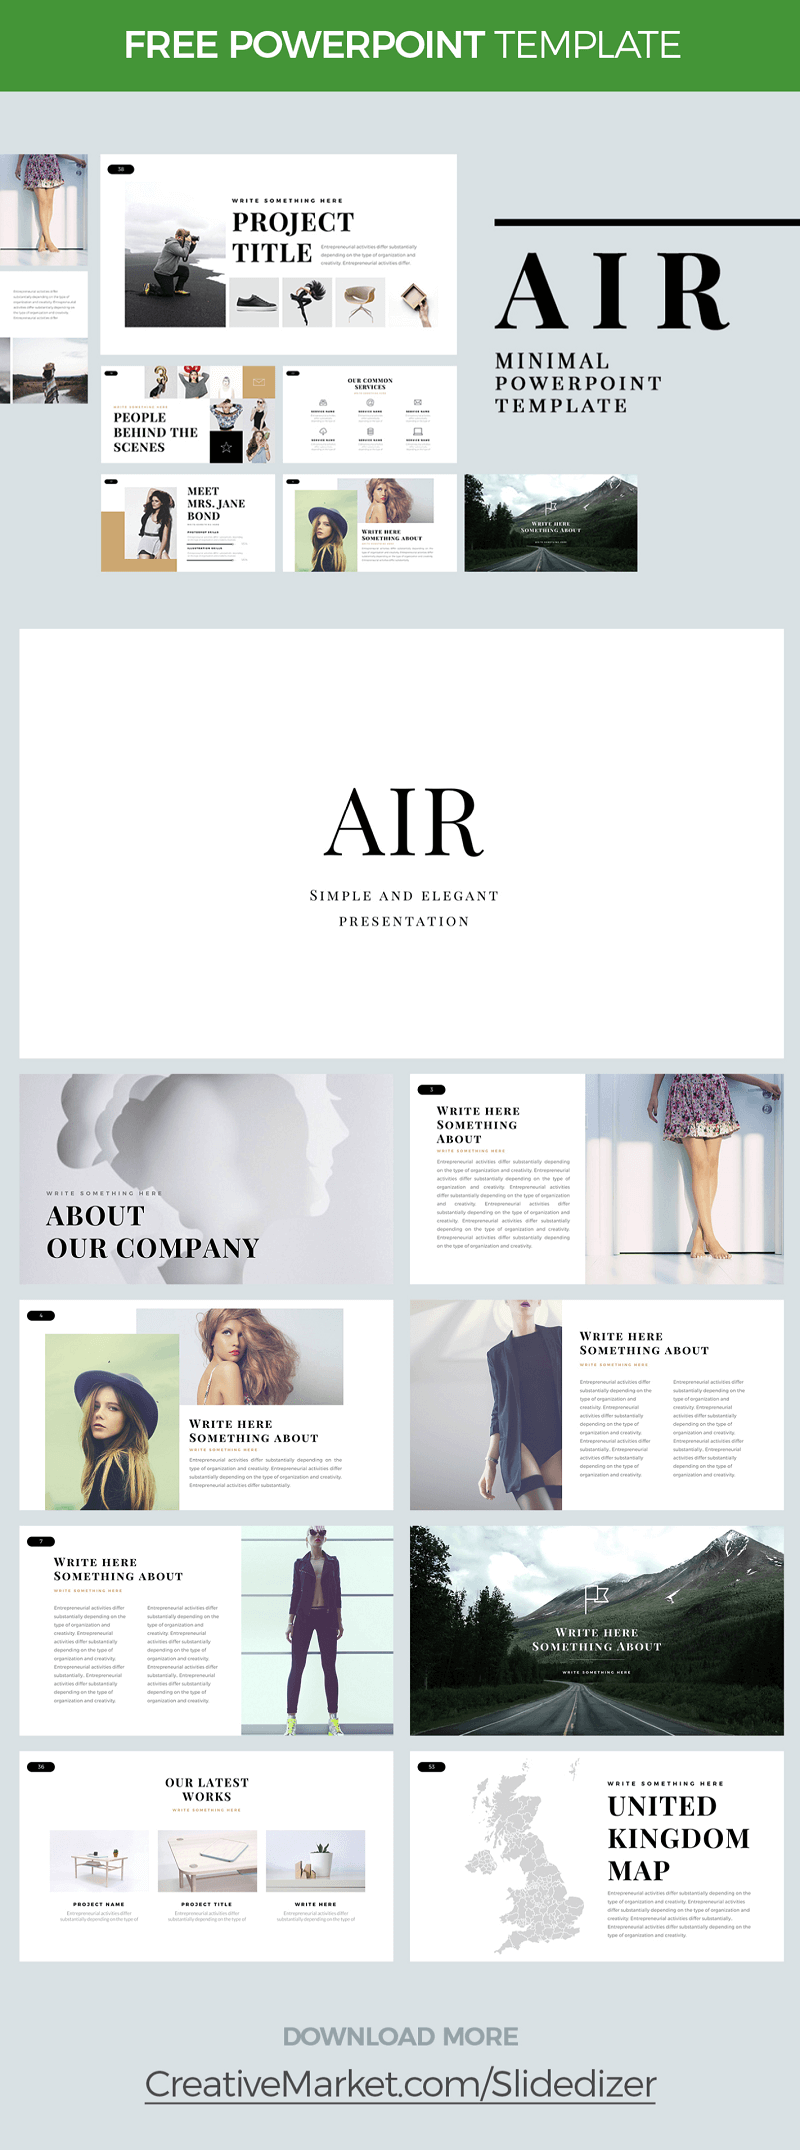 AIR - MINIMAL POWERPOINT TEMPLATE